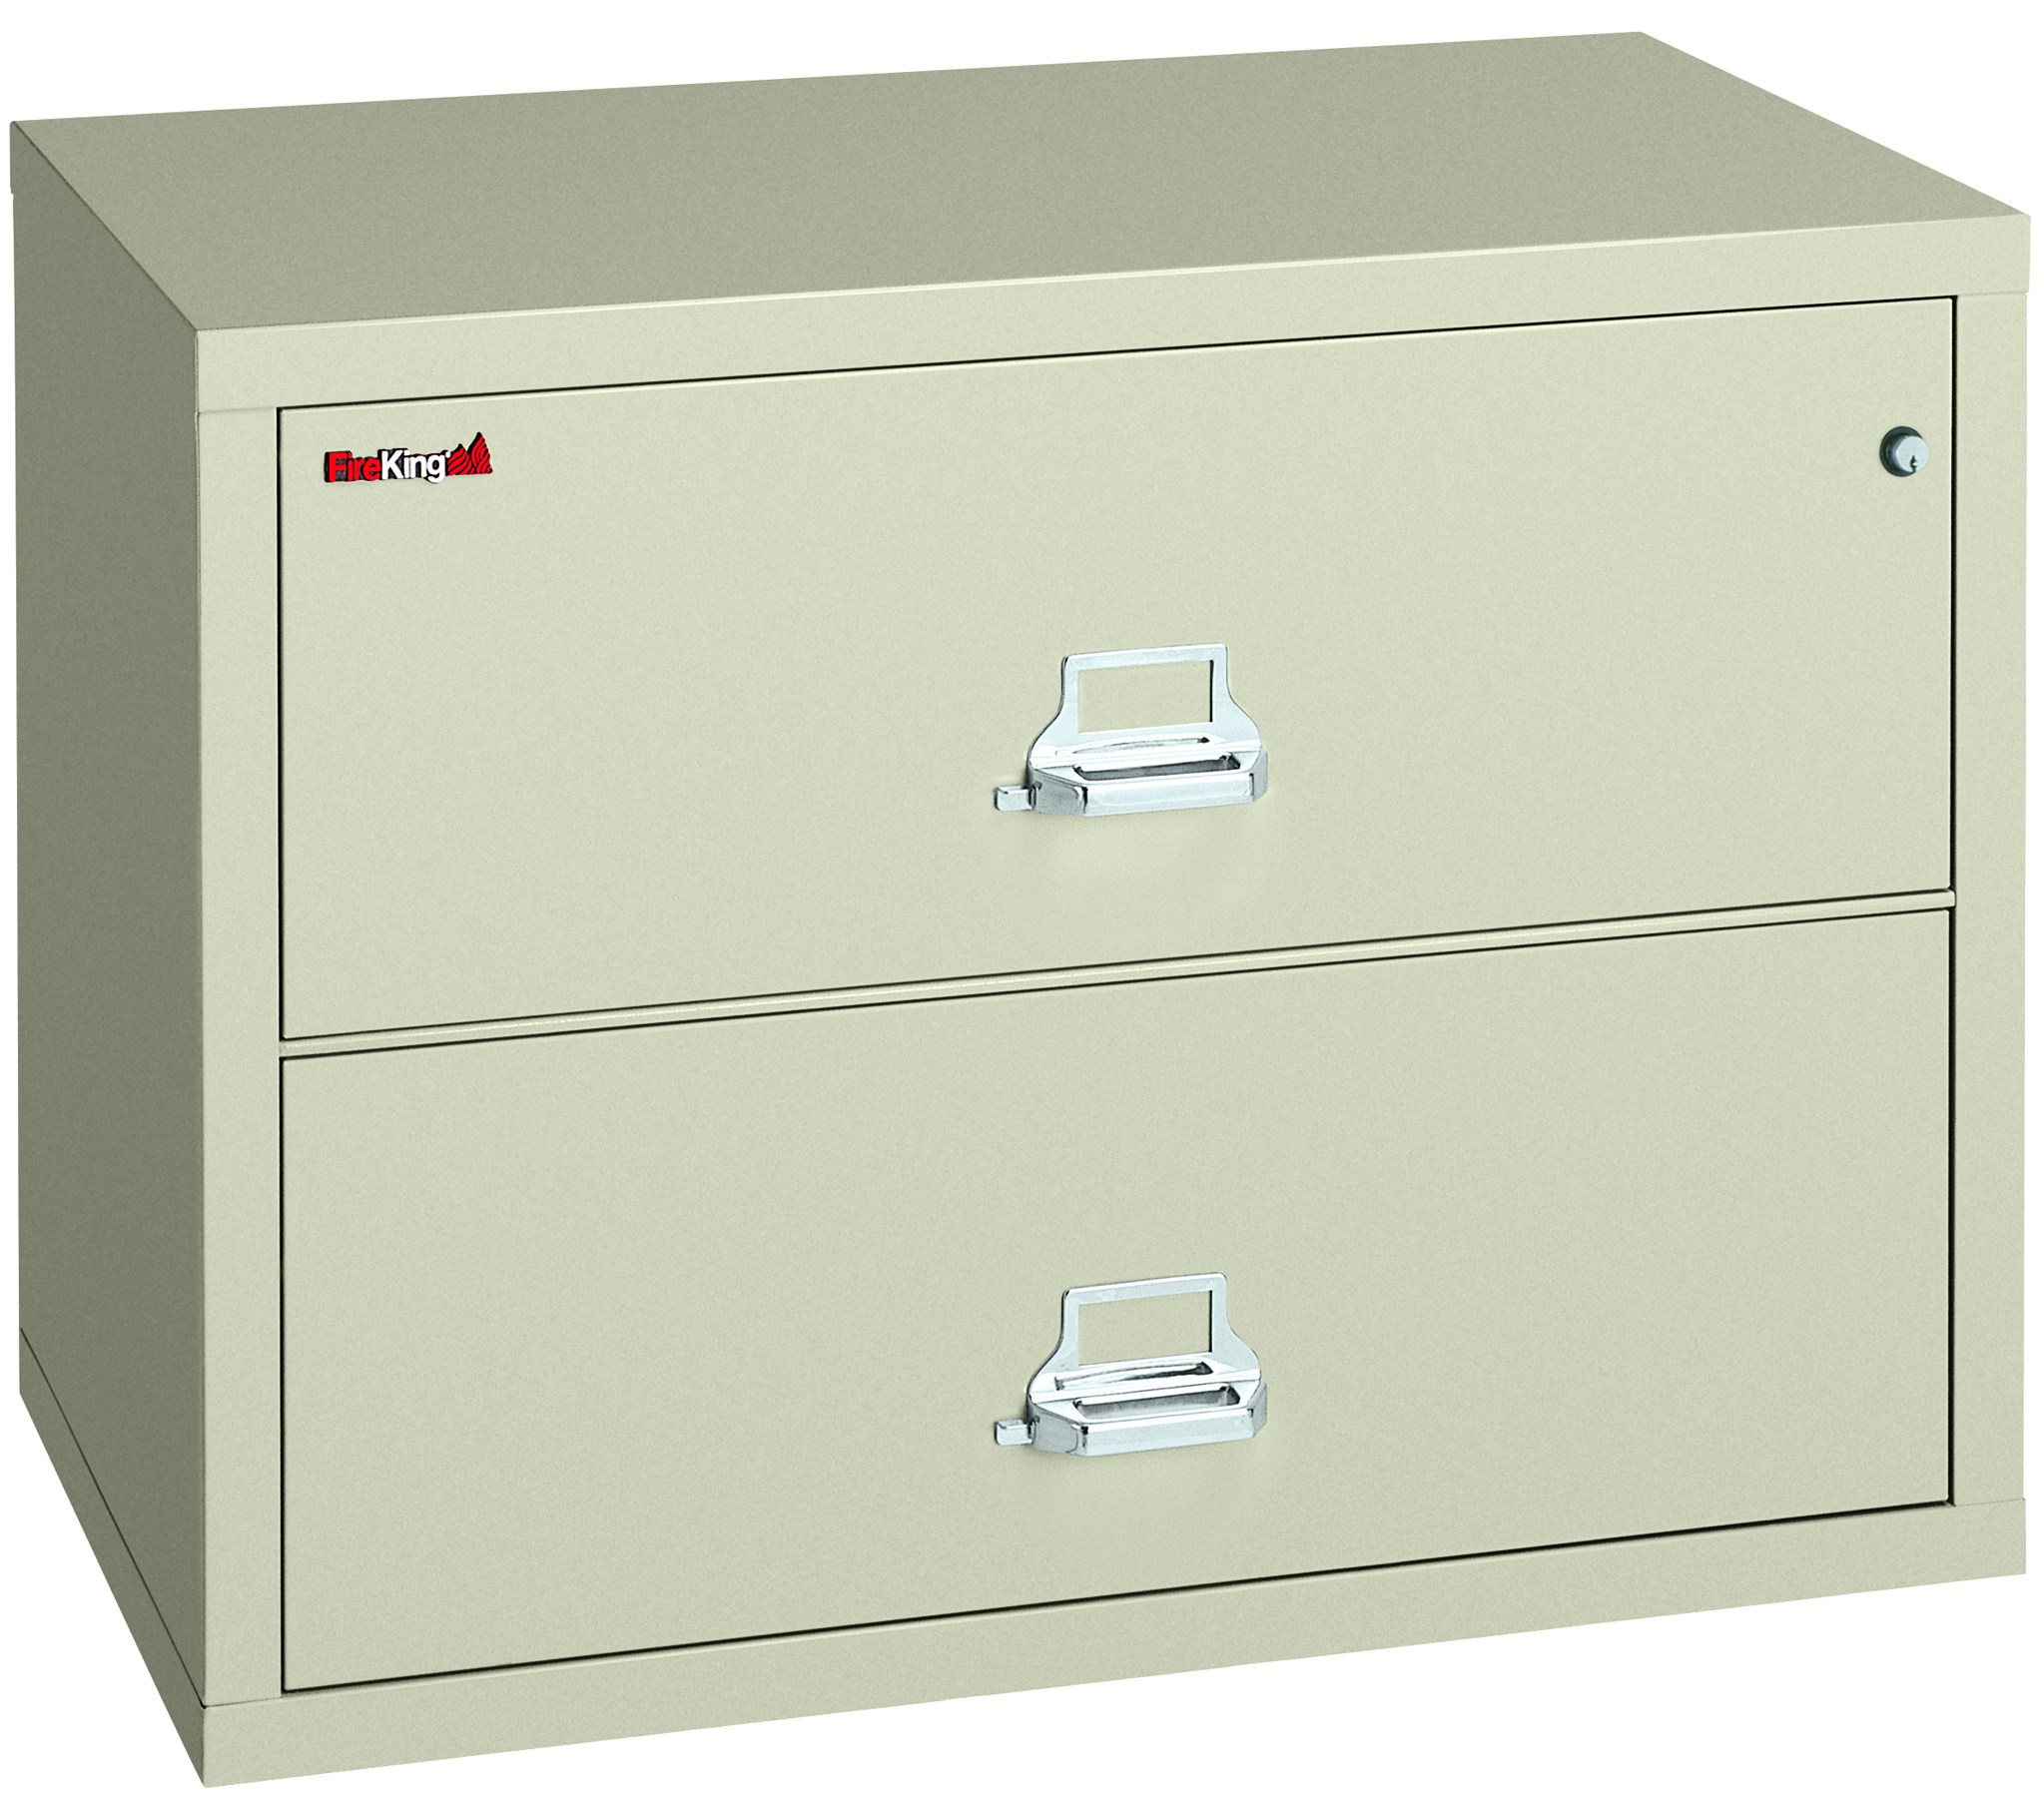 Great fireproof filing cabinets for office furniture ideas with 2 drawer fireproof file cabinet